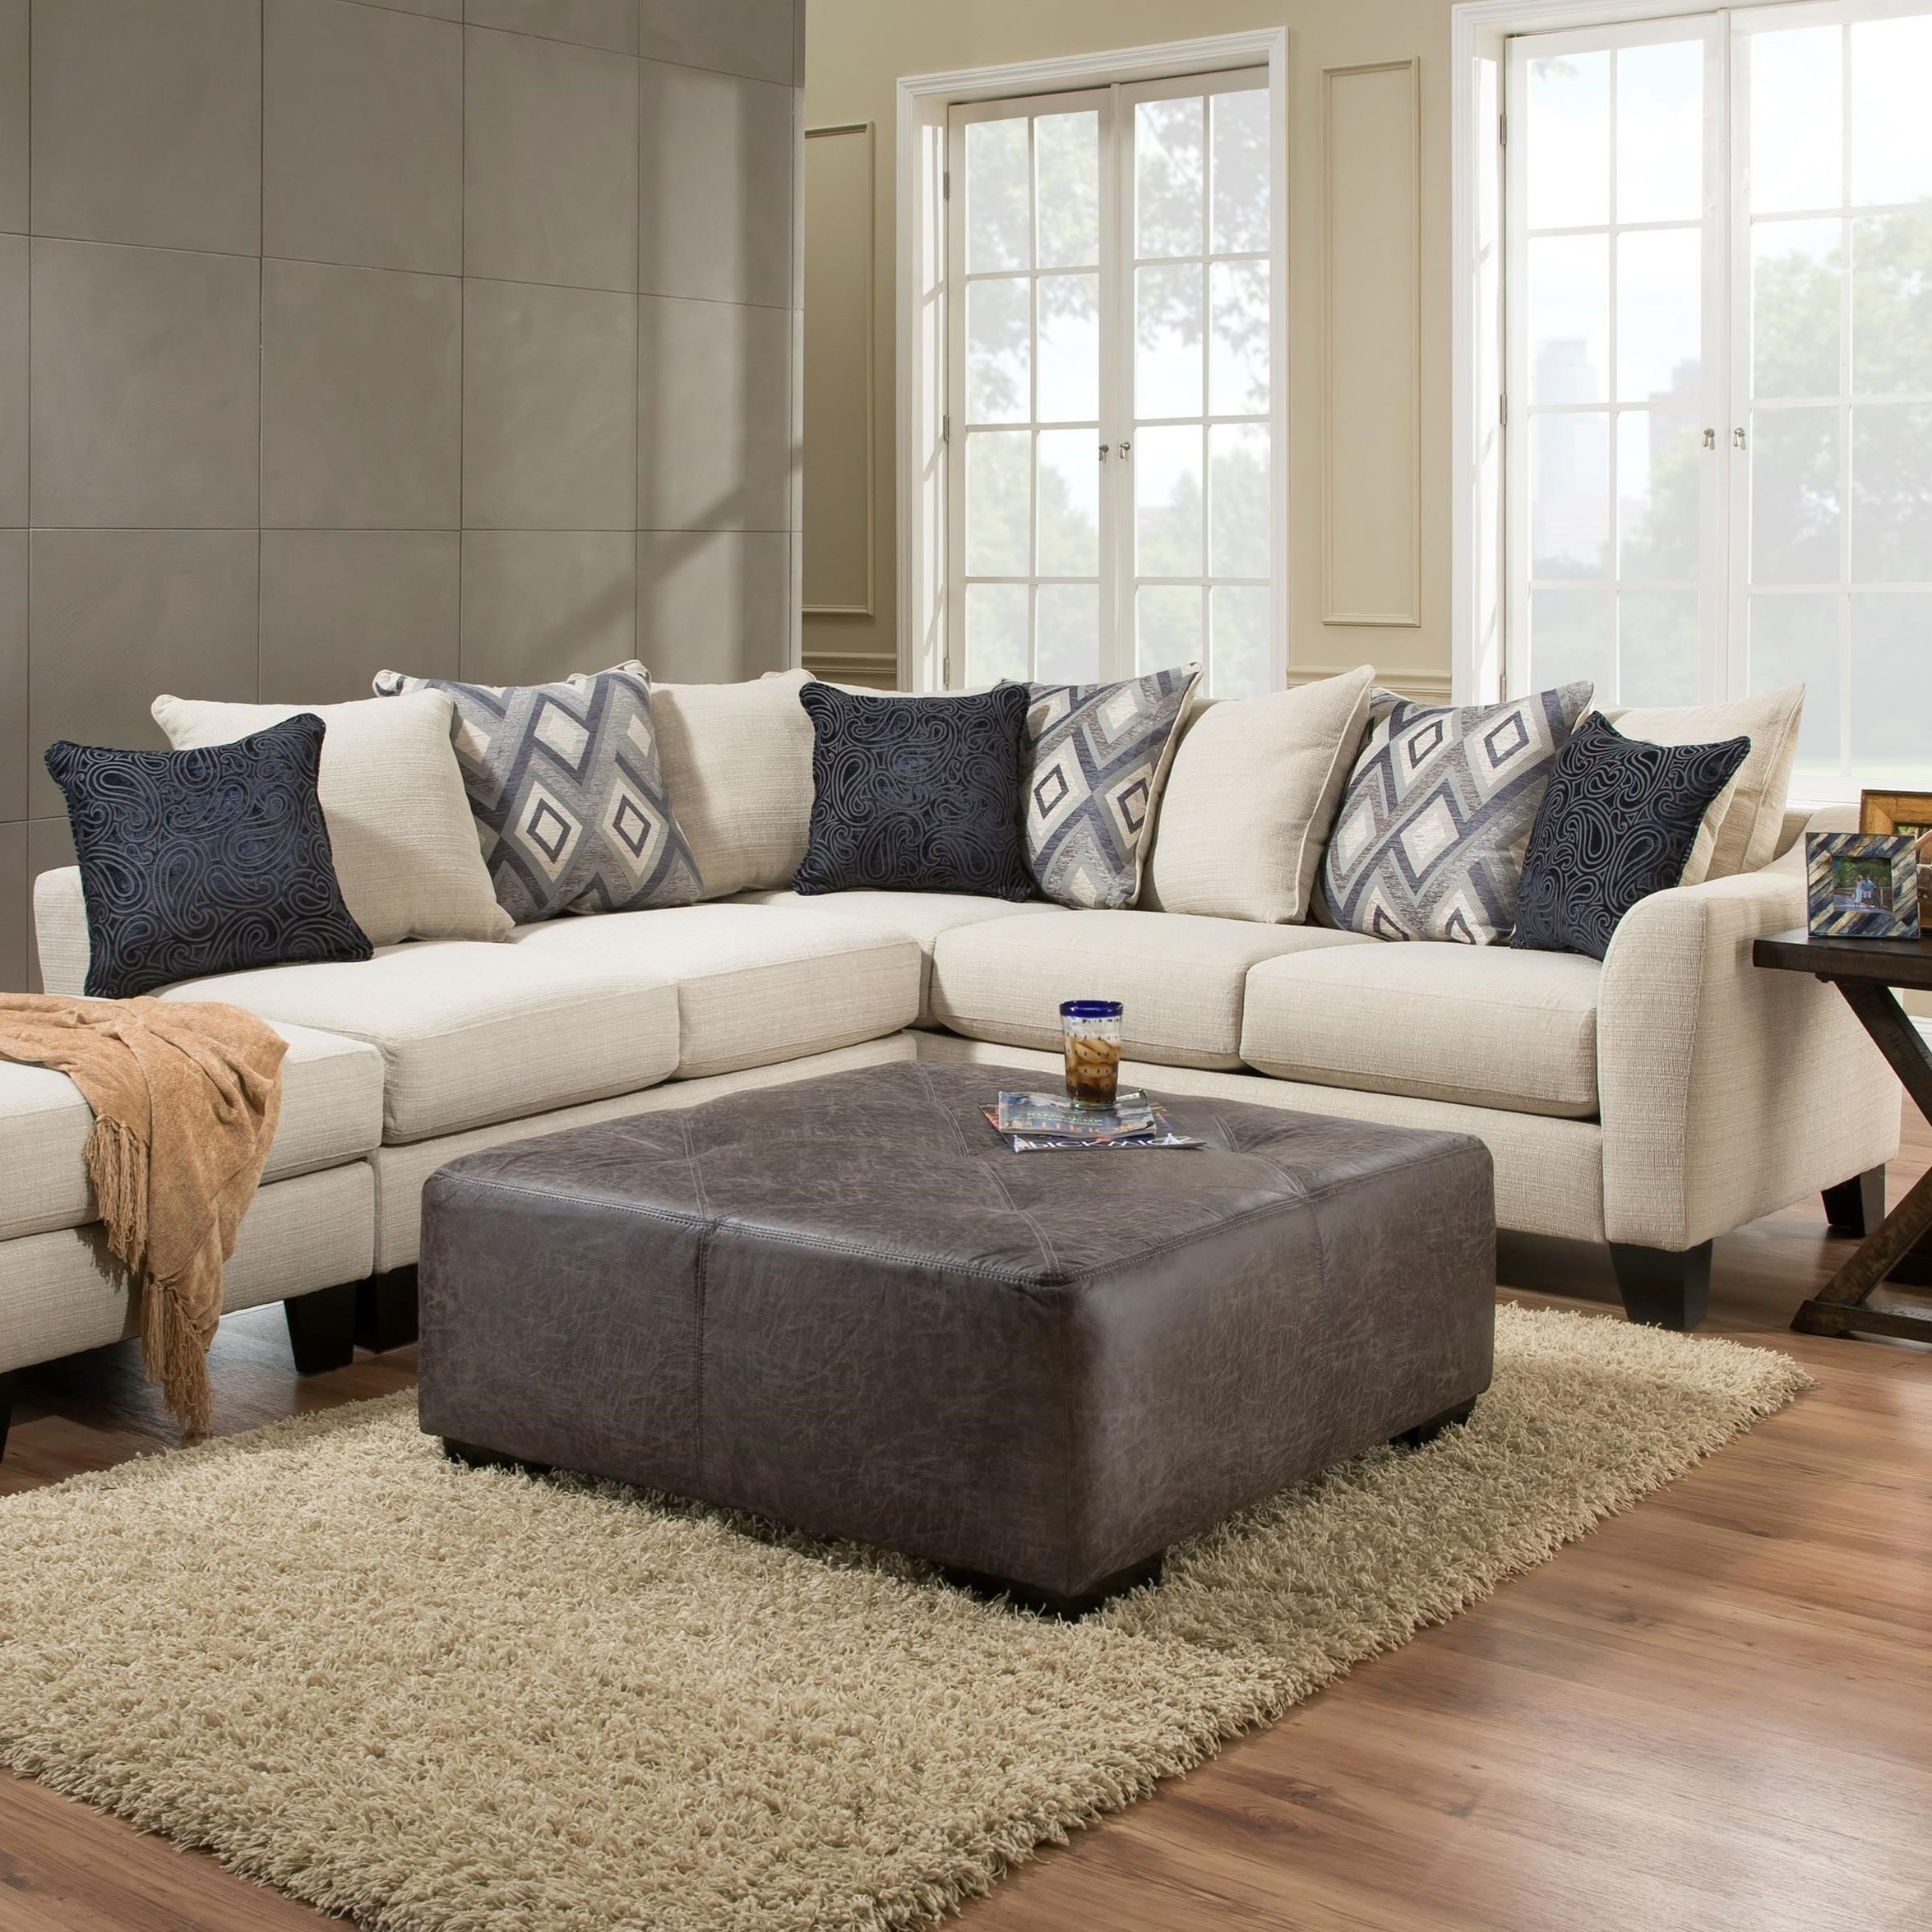 Preferred Albany R759 2 Piece Sectional Sofa In Dynasty Cream Fabric Regarding Hattiesburg Ms Sectional Sofas (View 5 of 15)